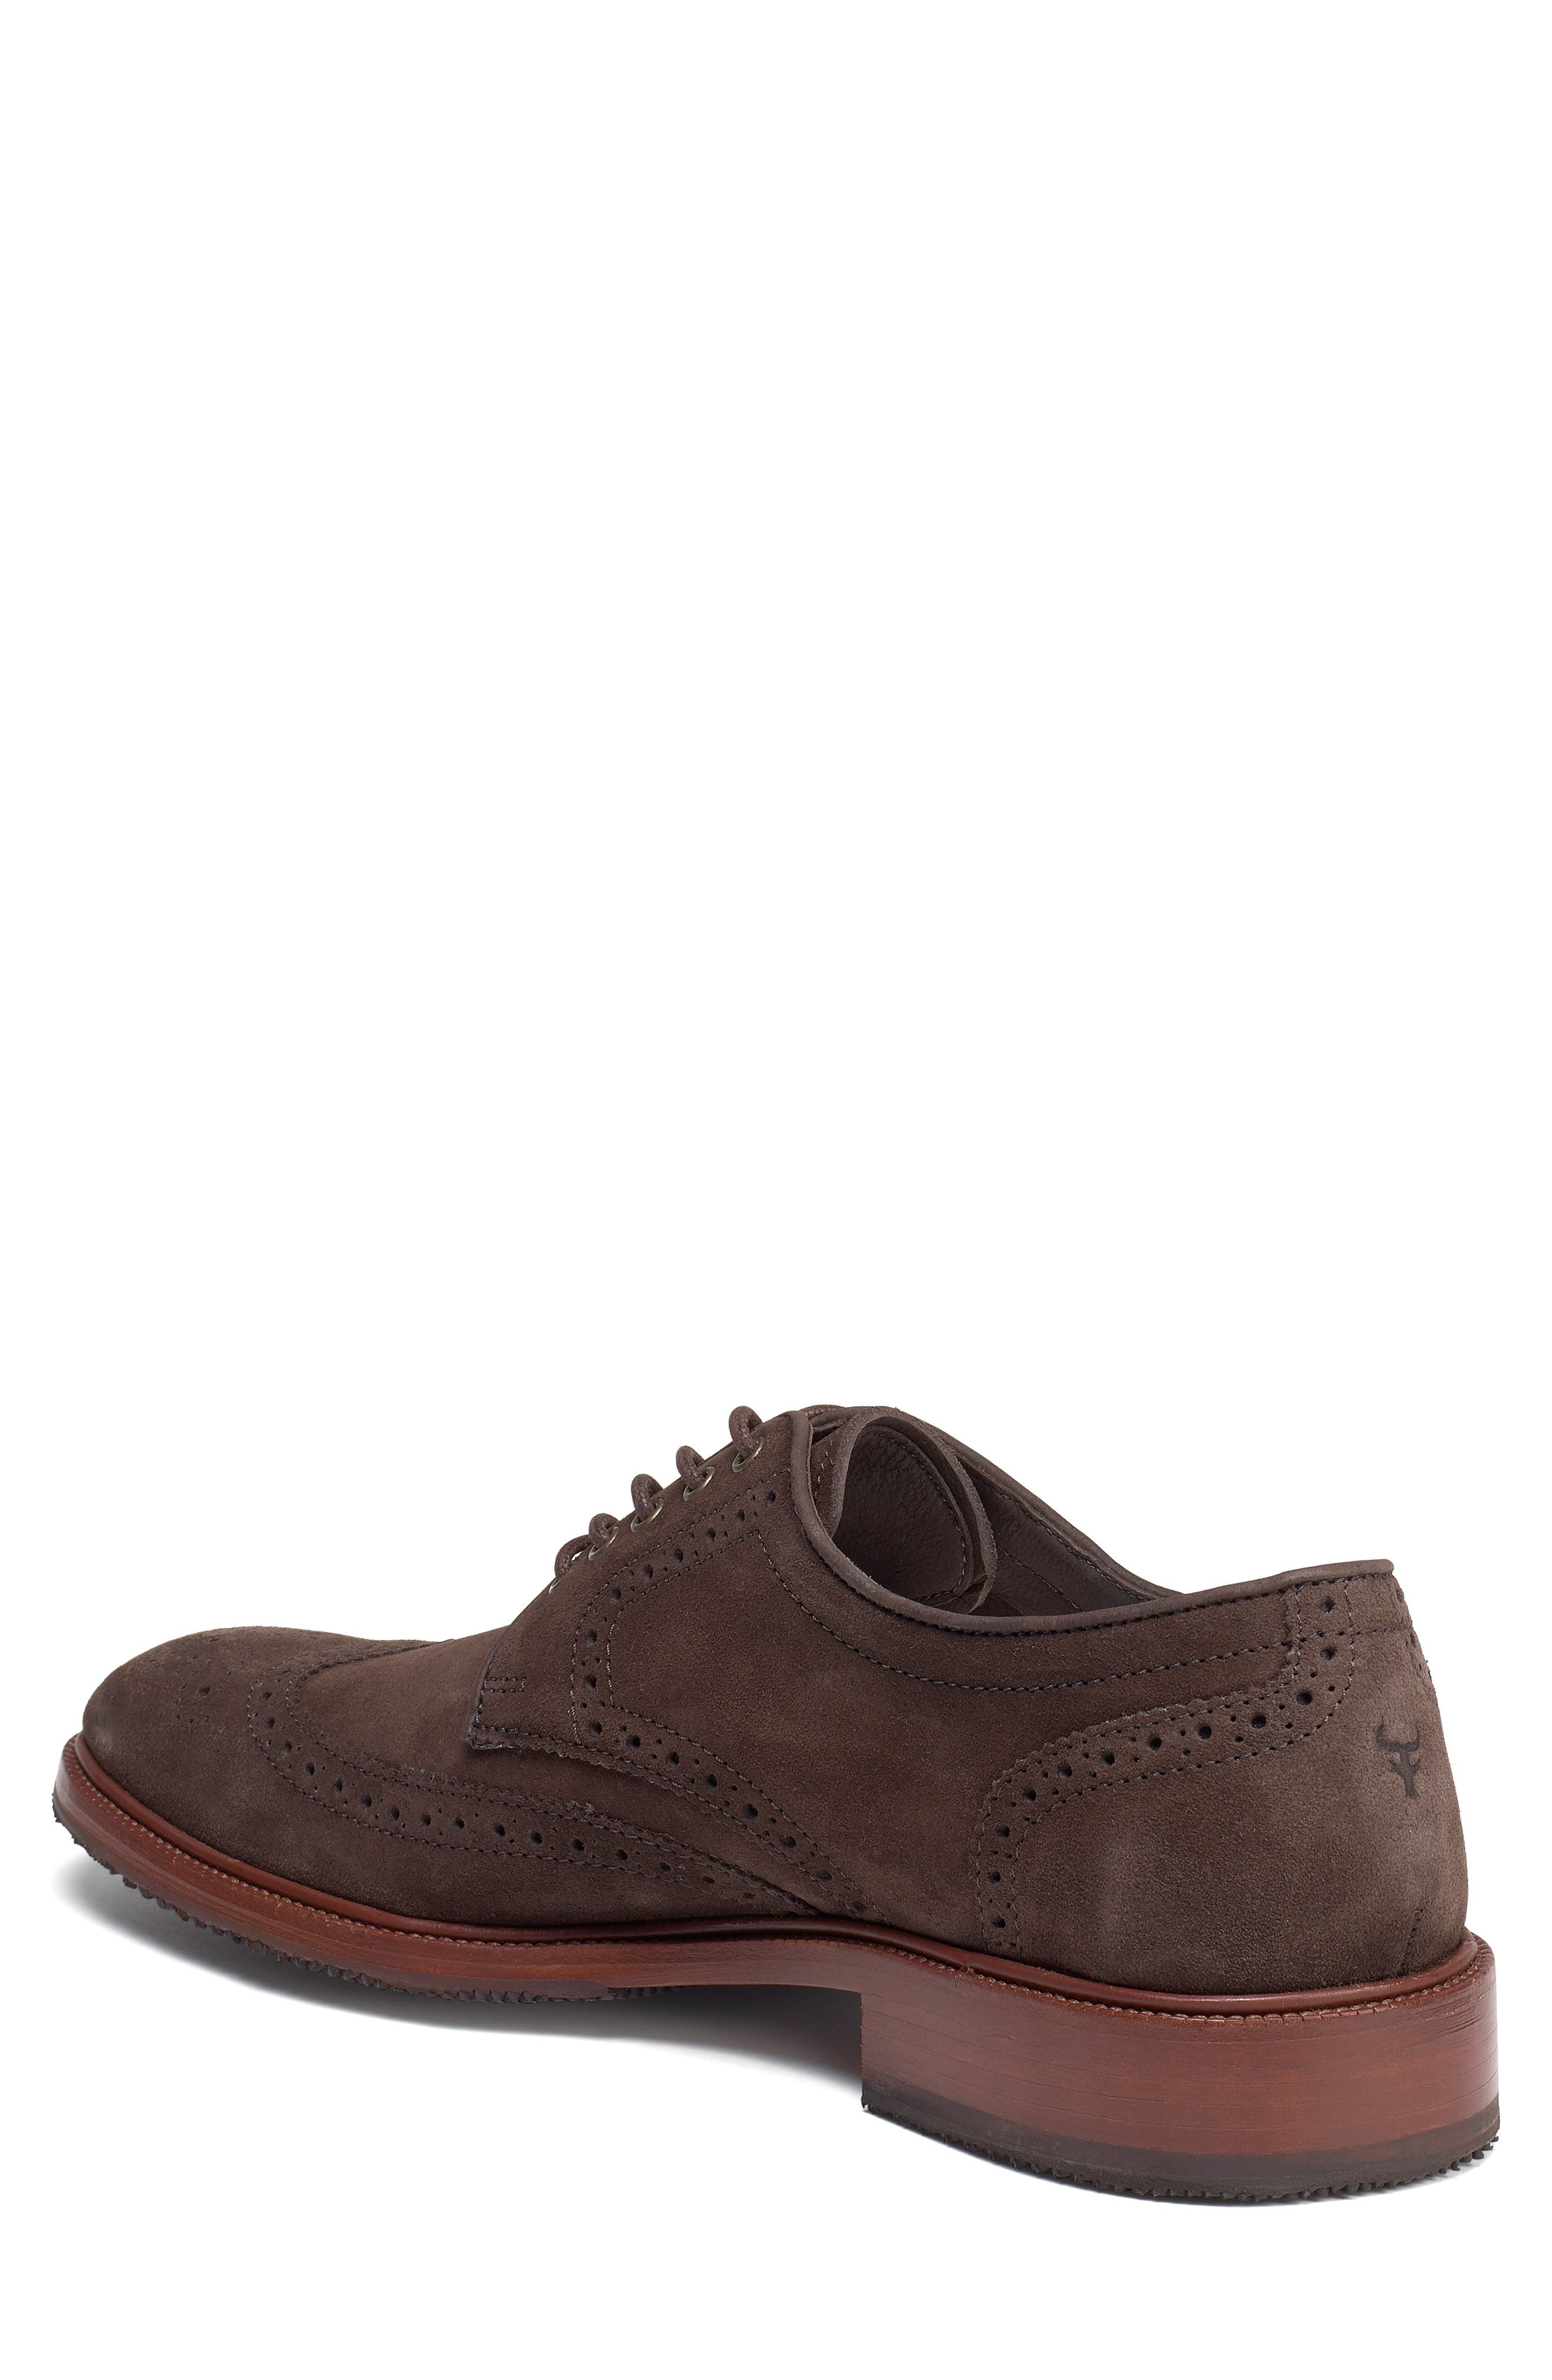 Logan Wingtip Derby,                             Alternate thumbnail 2, color,                             CHARCOAL SUEDE